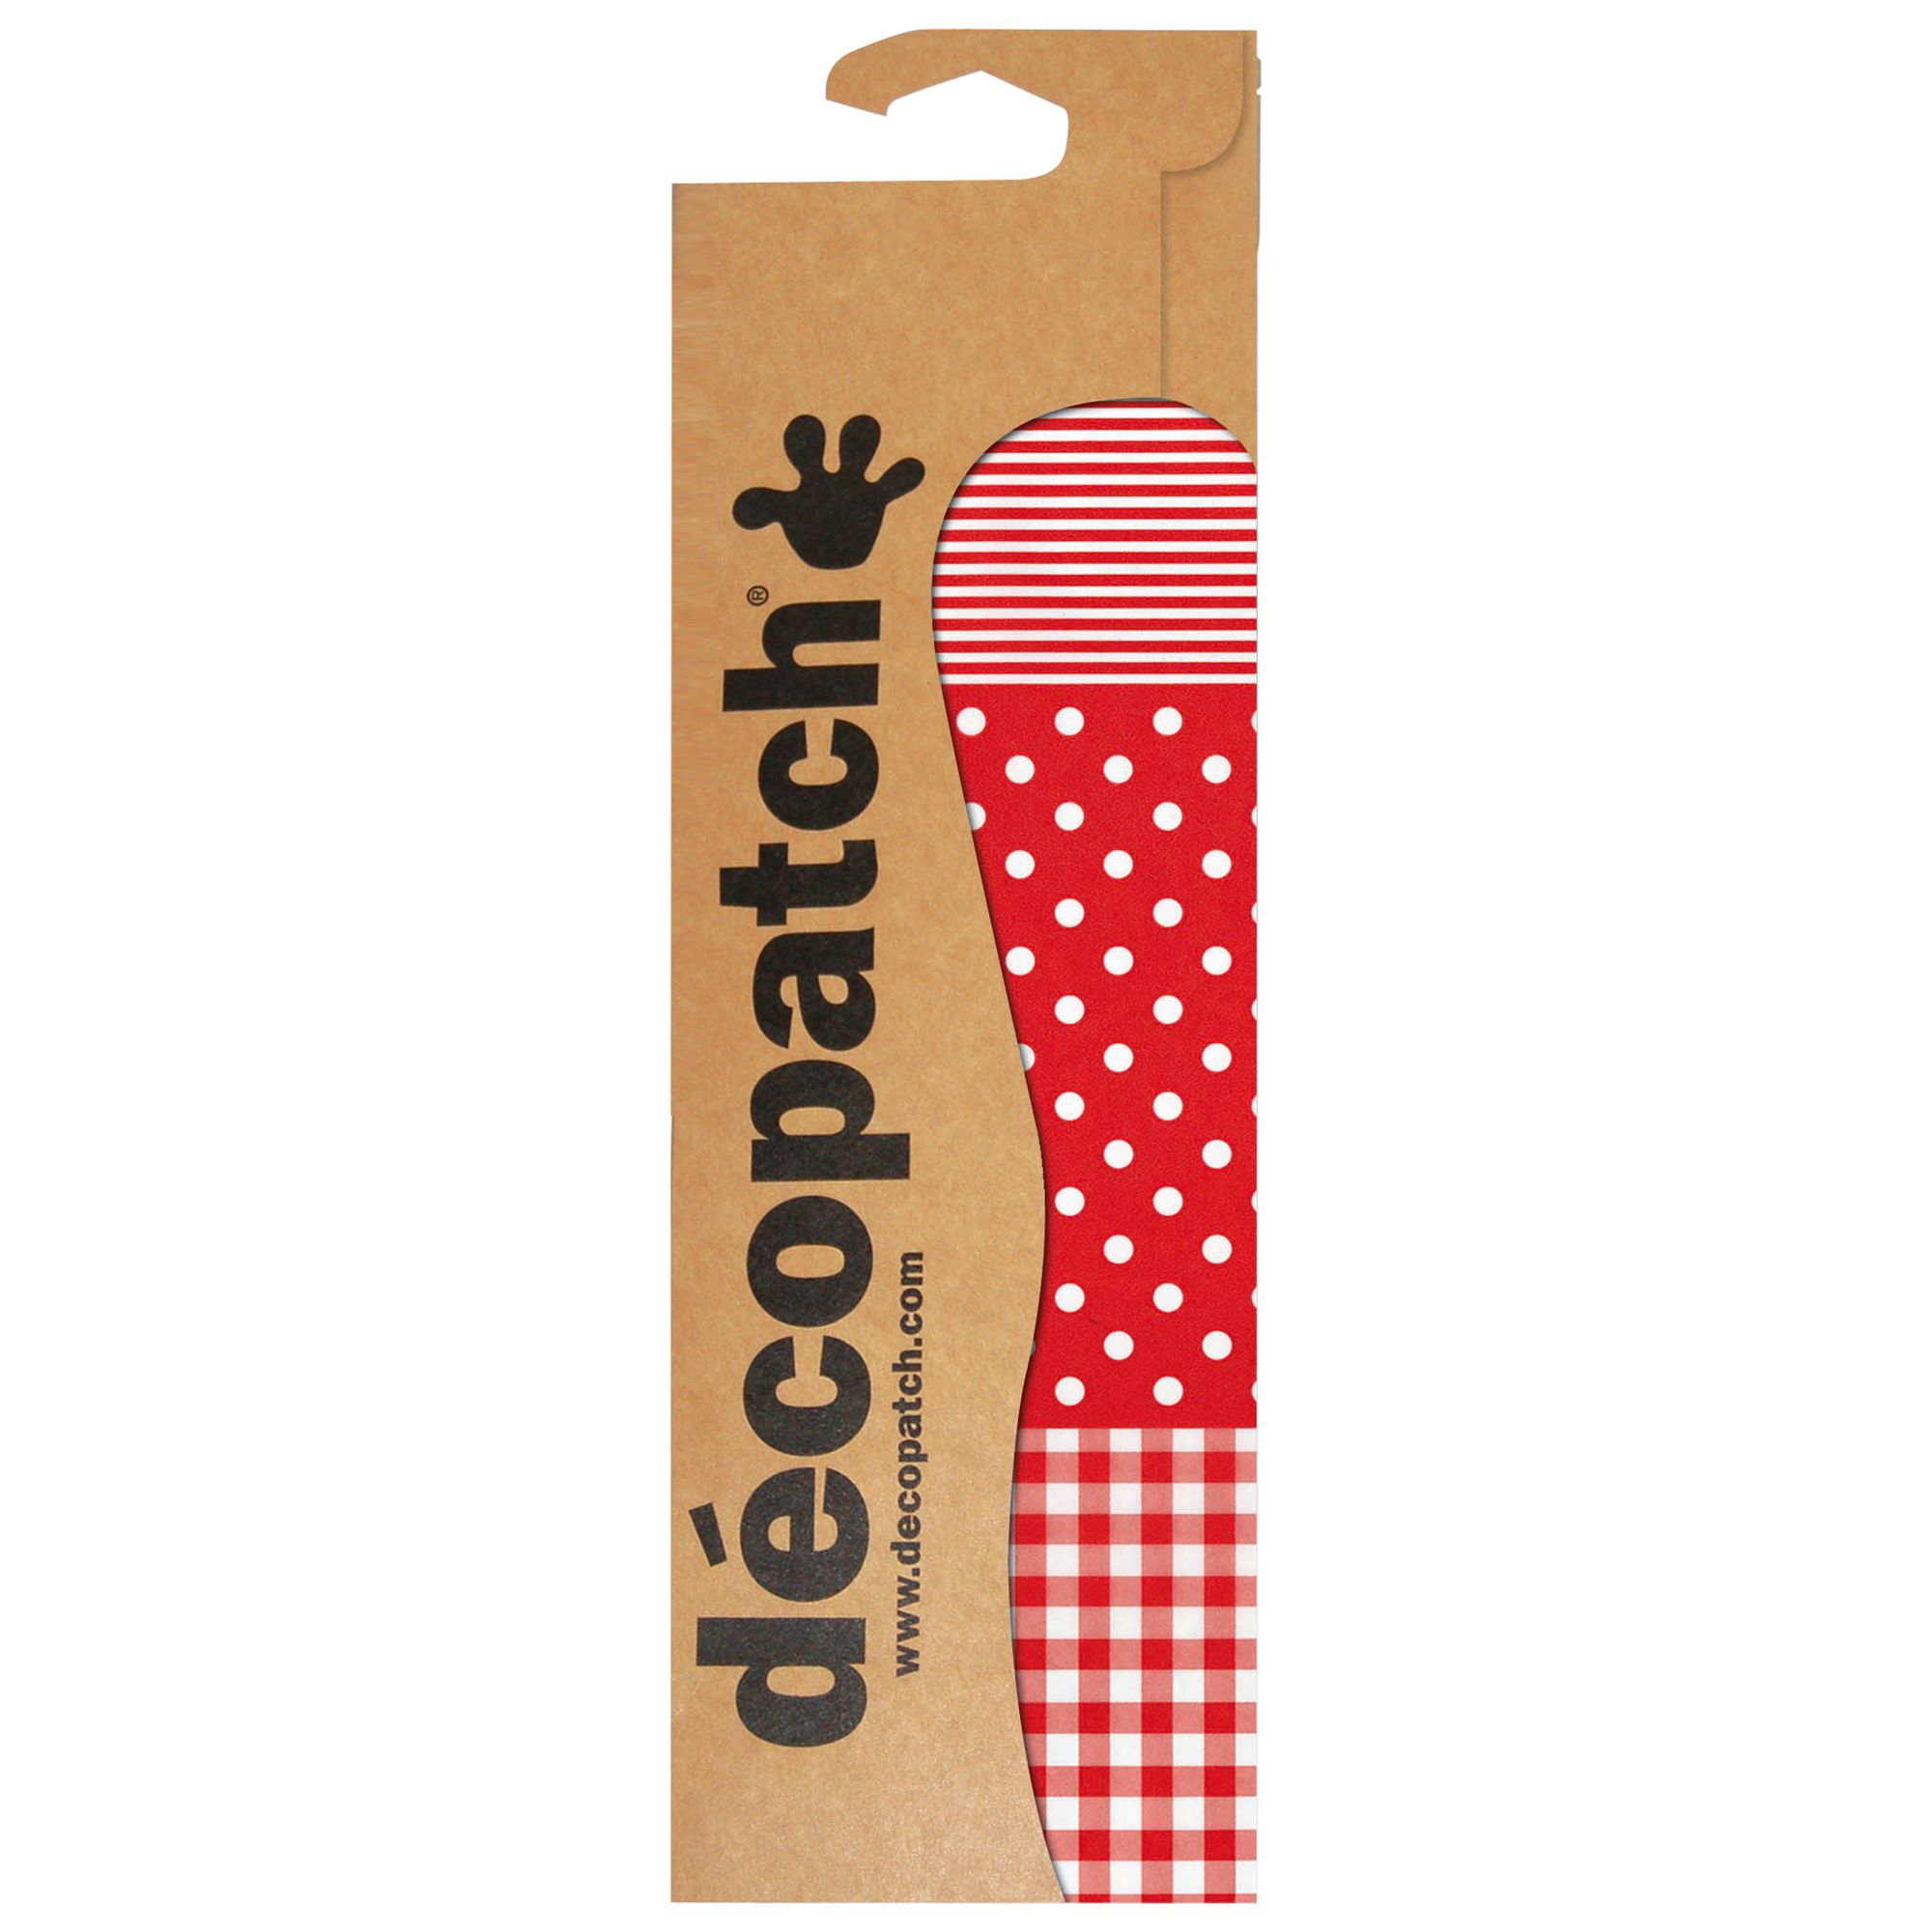 Decopatch Paper, Pack of 3, Red